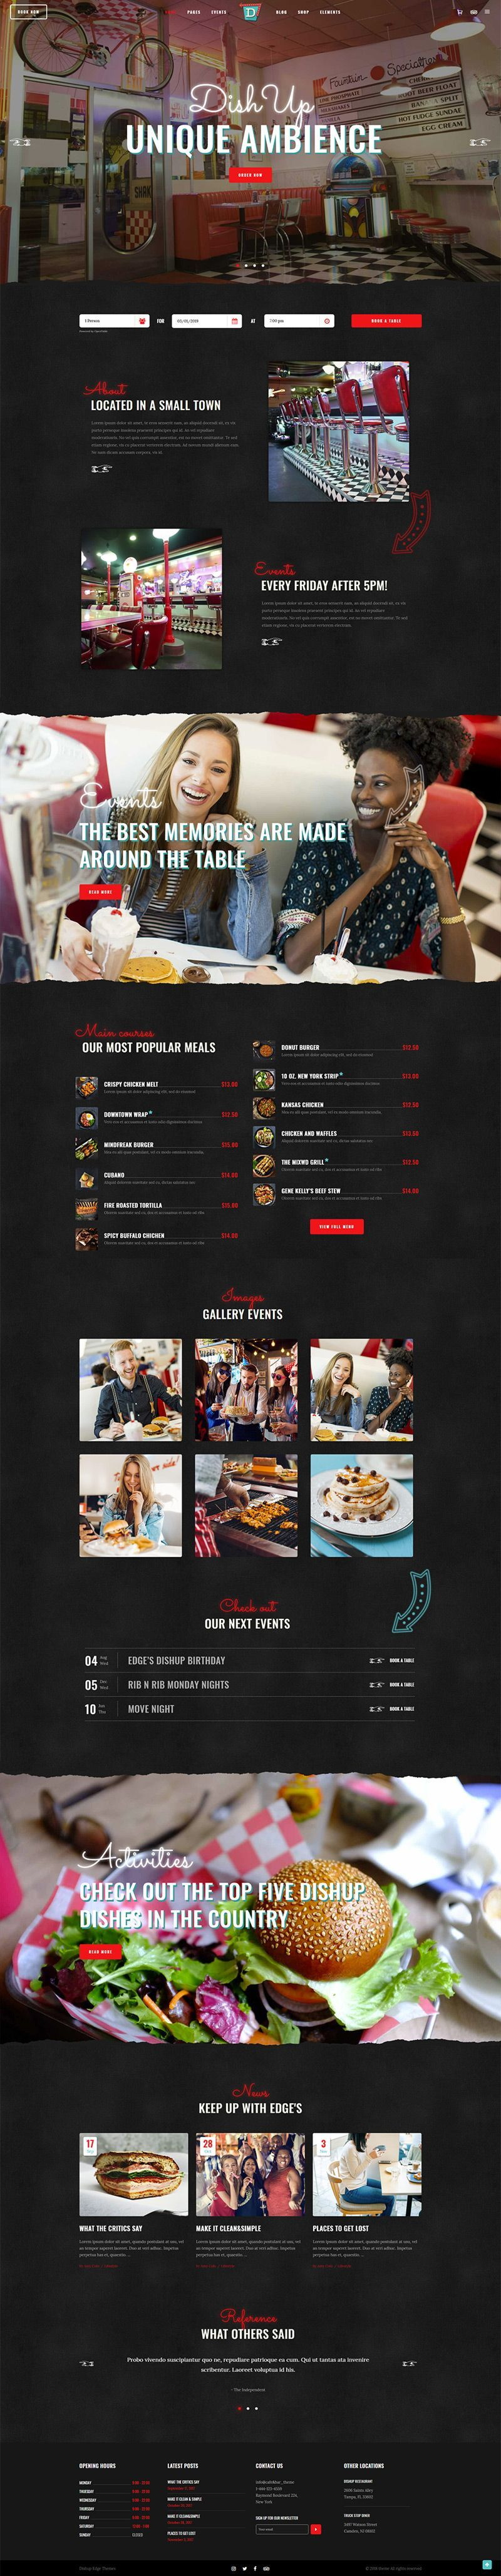 DishUp - Theme for Diners and Restaurants Fun, modern and packed with features made specifically for restaurants and food businesses, DishUp WordPress theme is all you need!